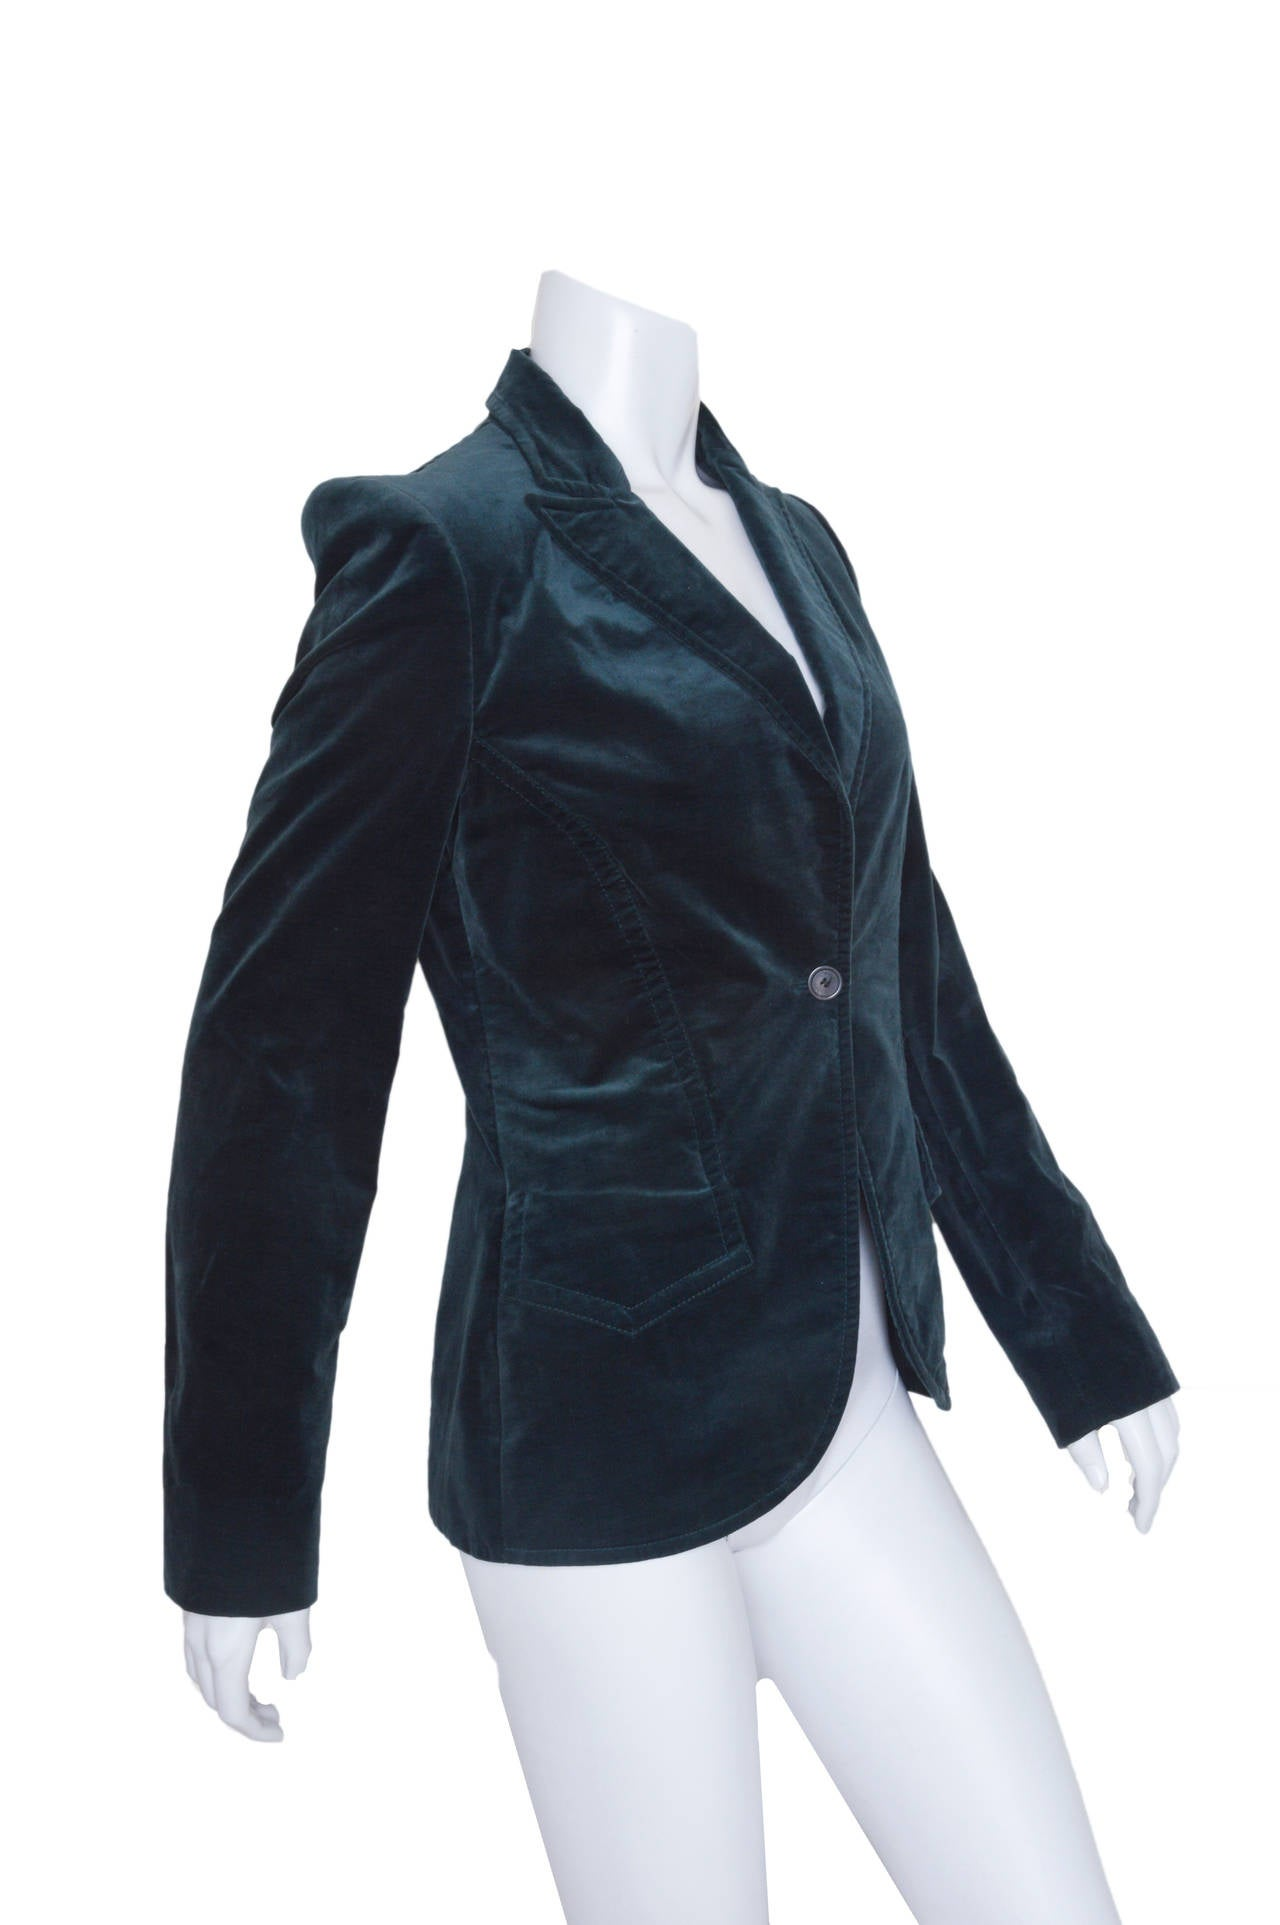 Luxurious Gucci velvet blazer.